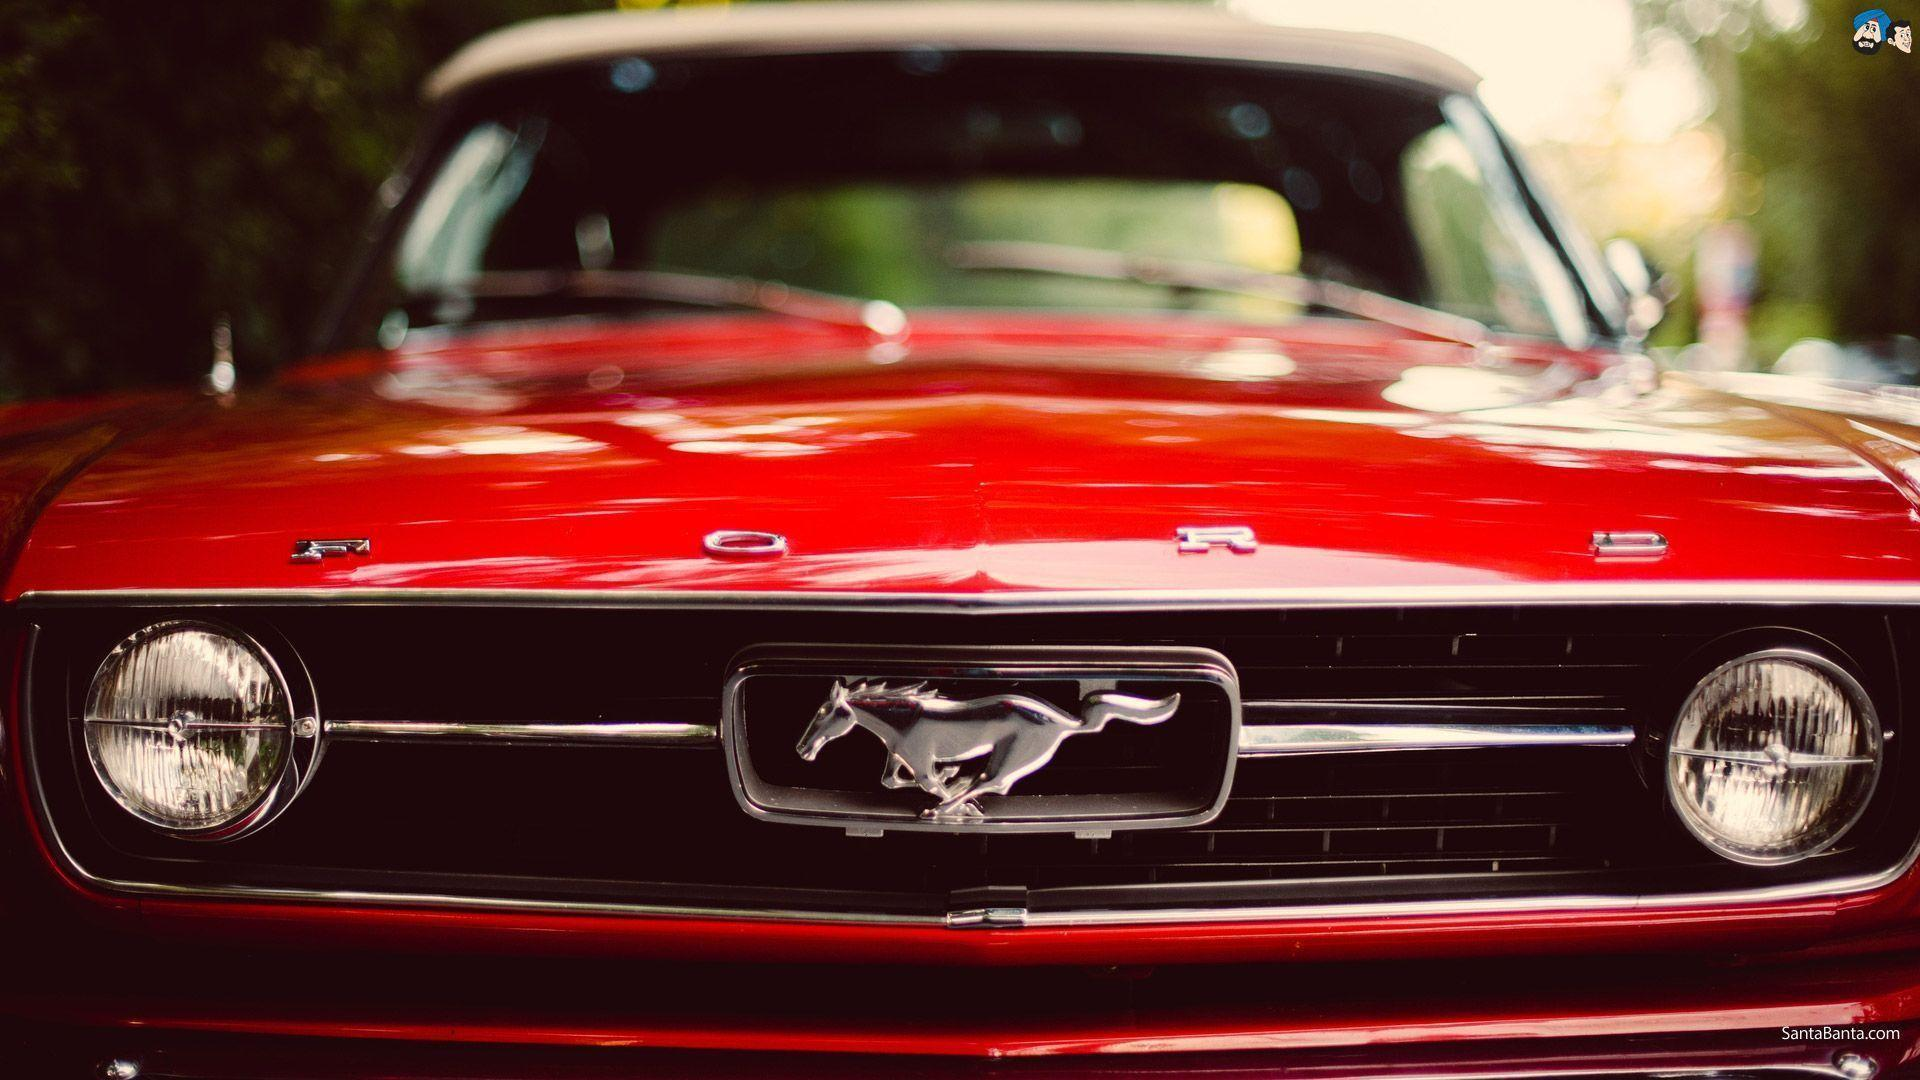 Wallpapers For > Ford Mustang Wallpaper Hd